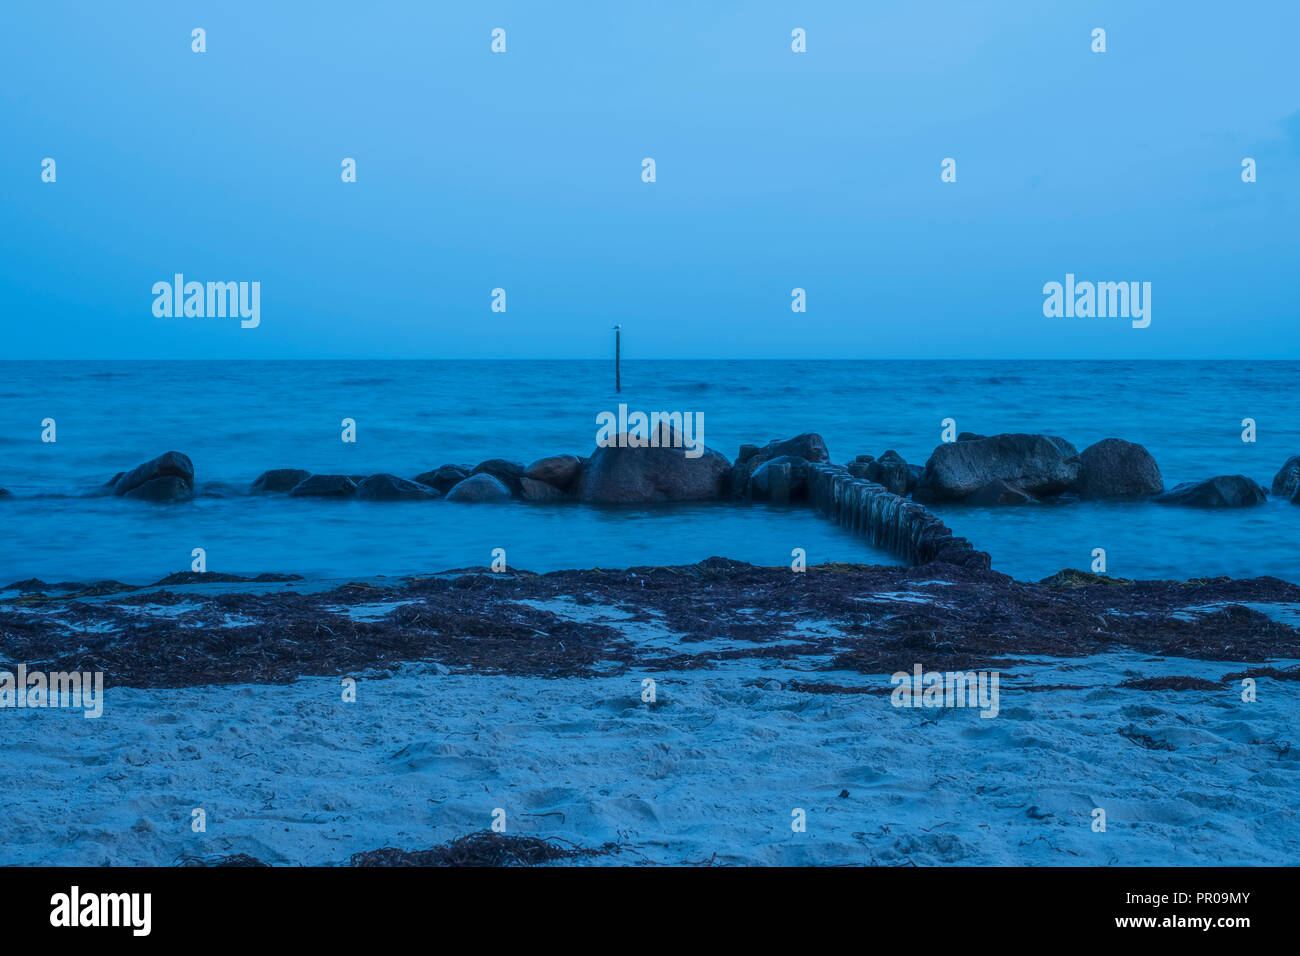 Rocks at the shore in blueish milky water after sunset during the blue hour at Rabylille Beach, Isle of Moen, Denmark, Scandinavia, Europe. - Stock Image